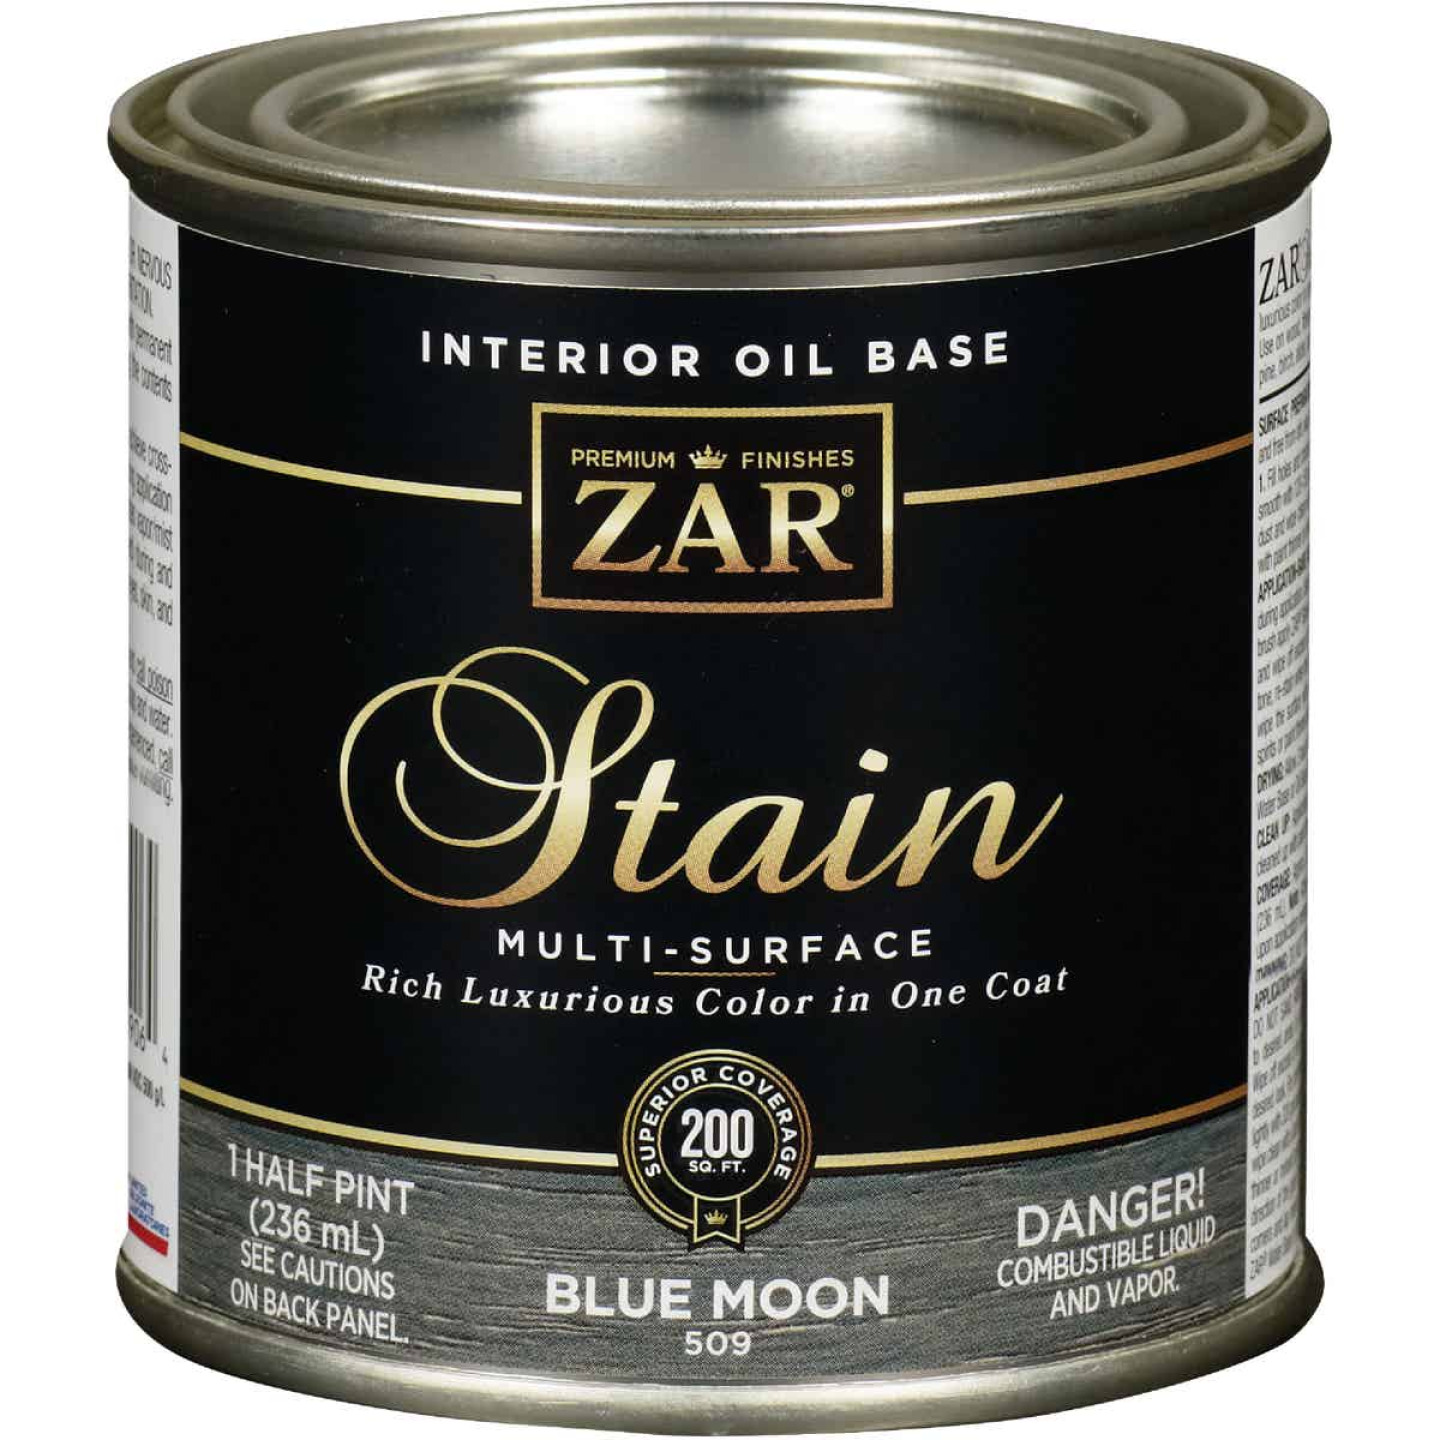 Zar 1/2 Pt. Blue Moon Oil-Based Multi-Surface Interior Stain Image 1